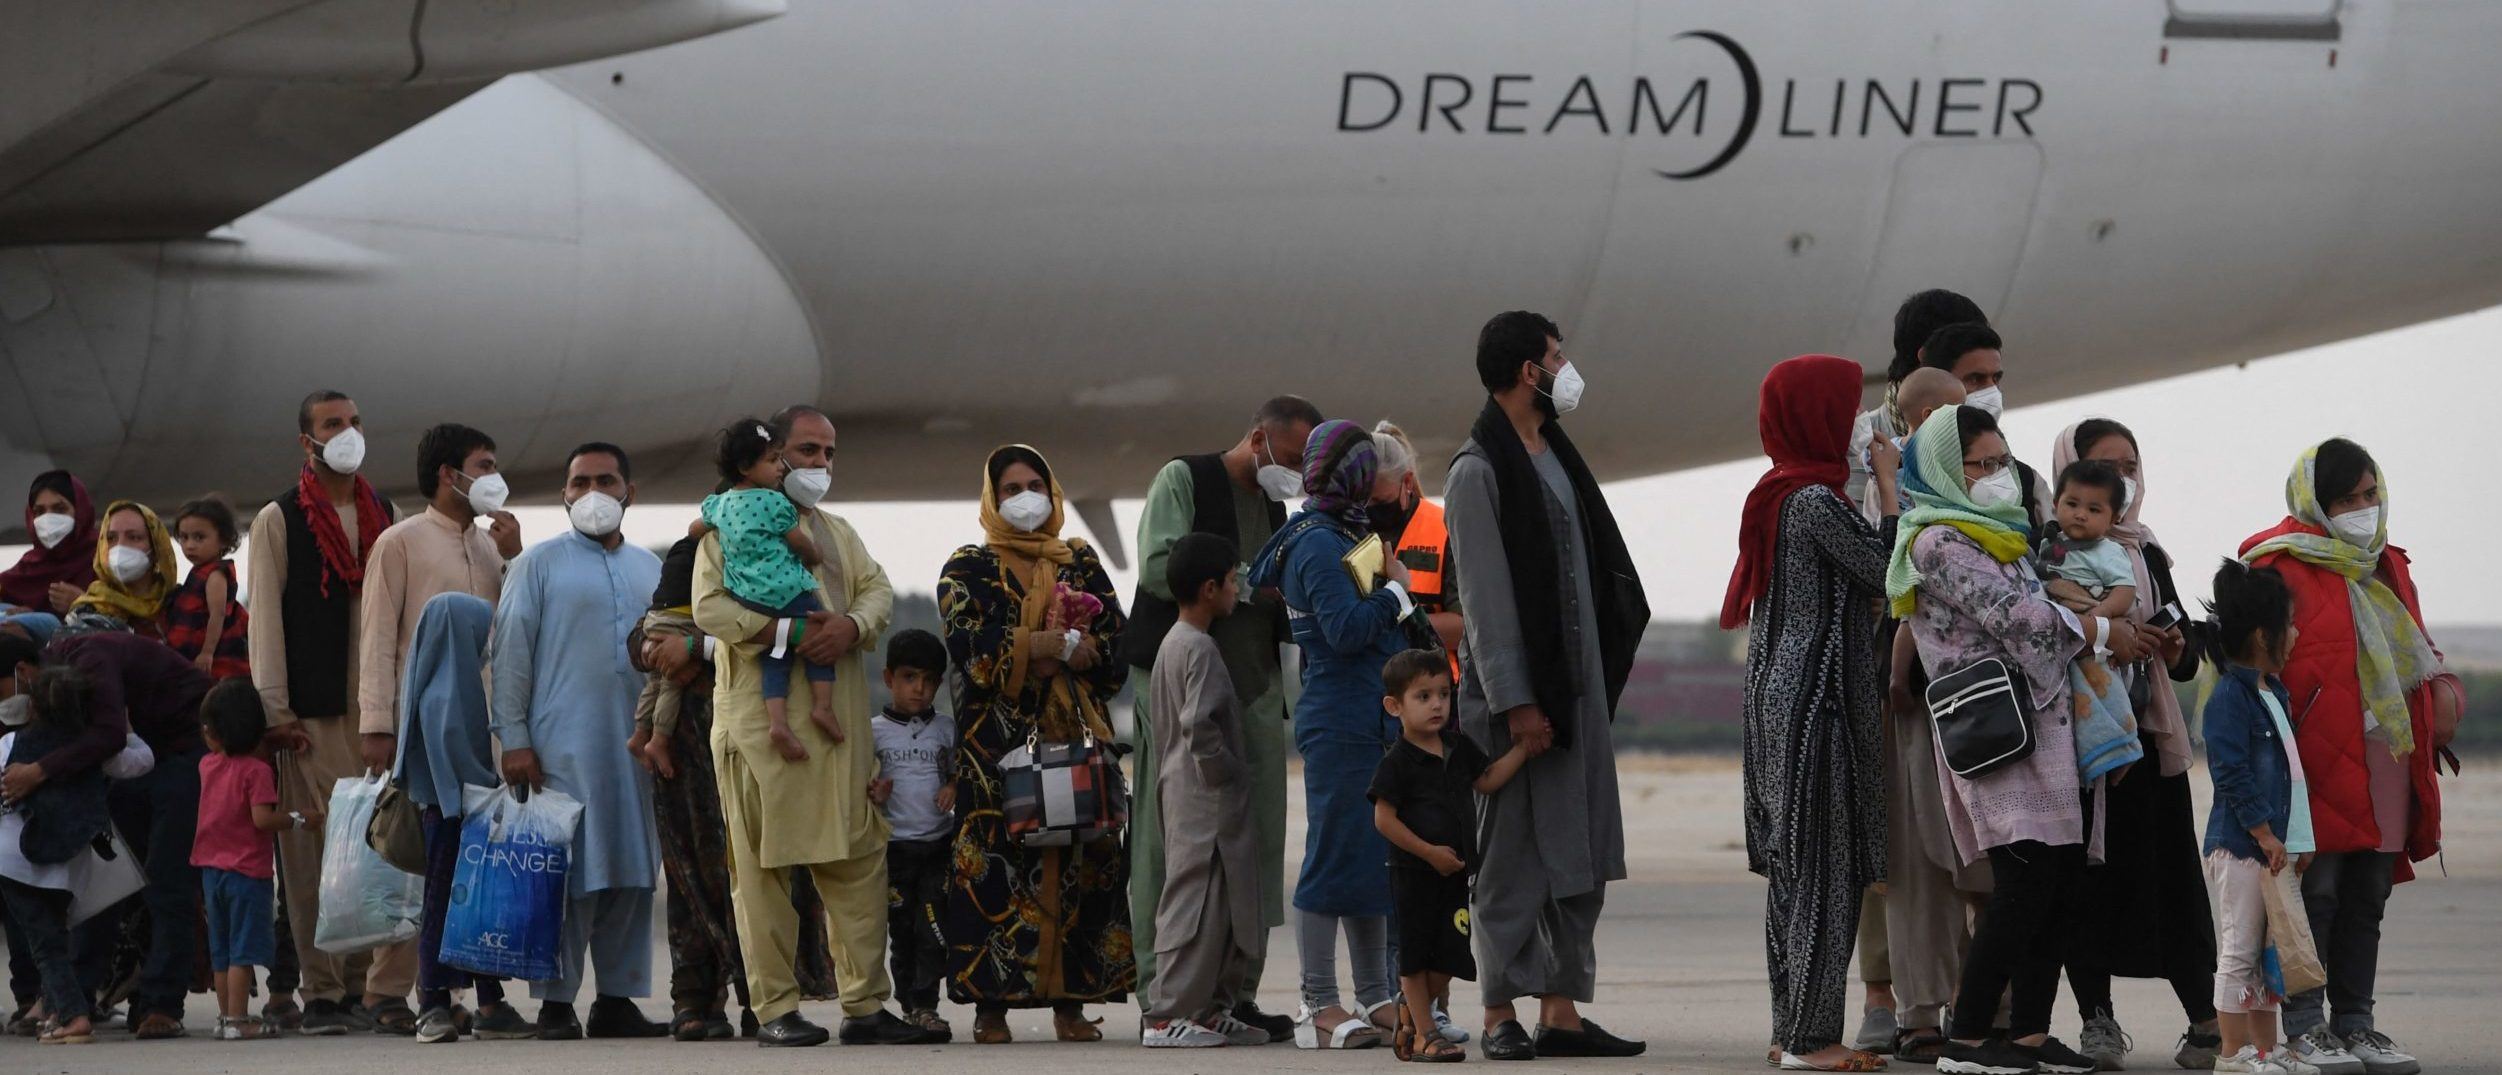 TOPSHOT - Refugees queue on the tarmac after disembarking from an evacuation flight from Kabul, at the Torrejon de Ardoz air base, 30 km from Madrid, on August 24, 2021. - Spain has been evacuating its nationals and local contractors from Afghanistan via Dubai since the Taliban swept to power ten days ago. Another 420 people are expected to arrive in Spain on August 24, 2021, including 290 people from Dubai and 130 who are expected to leave on a Spanish military plane from Kabul. (Photo by PIERRE-PHILIPPE MARCOU / AFP) (Photo by PIERRE-PHILIPPE MARCOU/AFP via Getty Images)